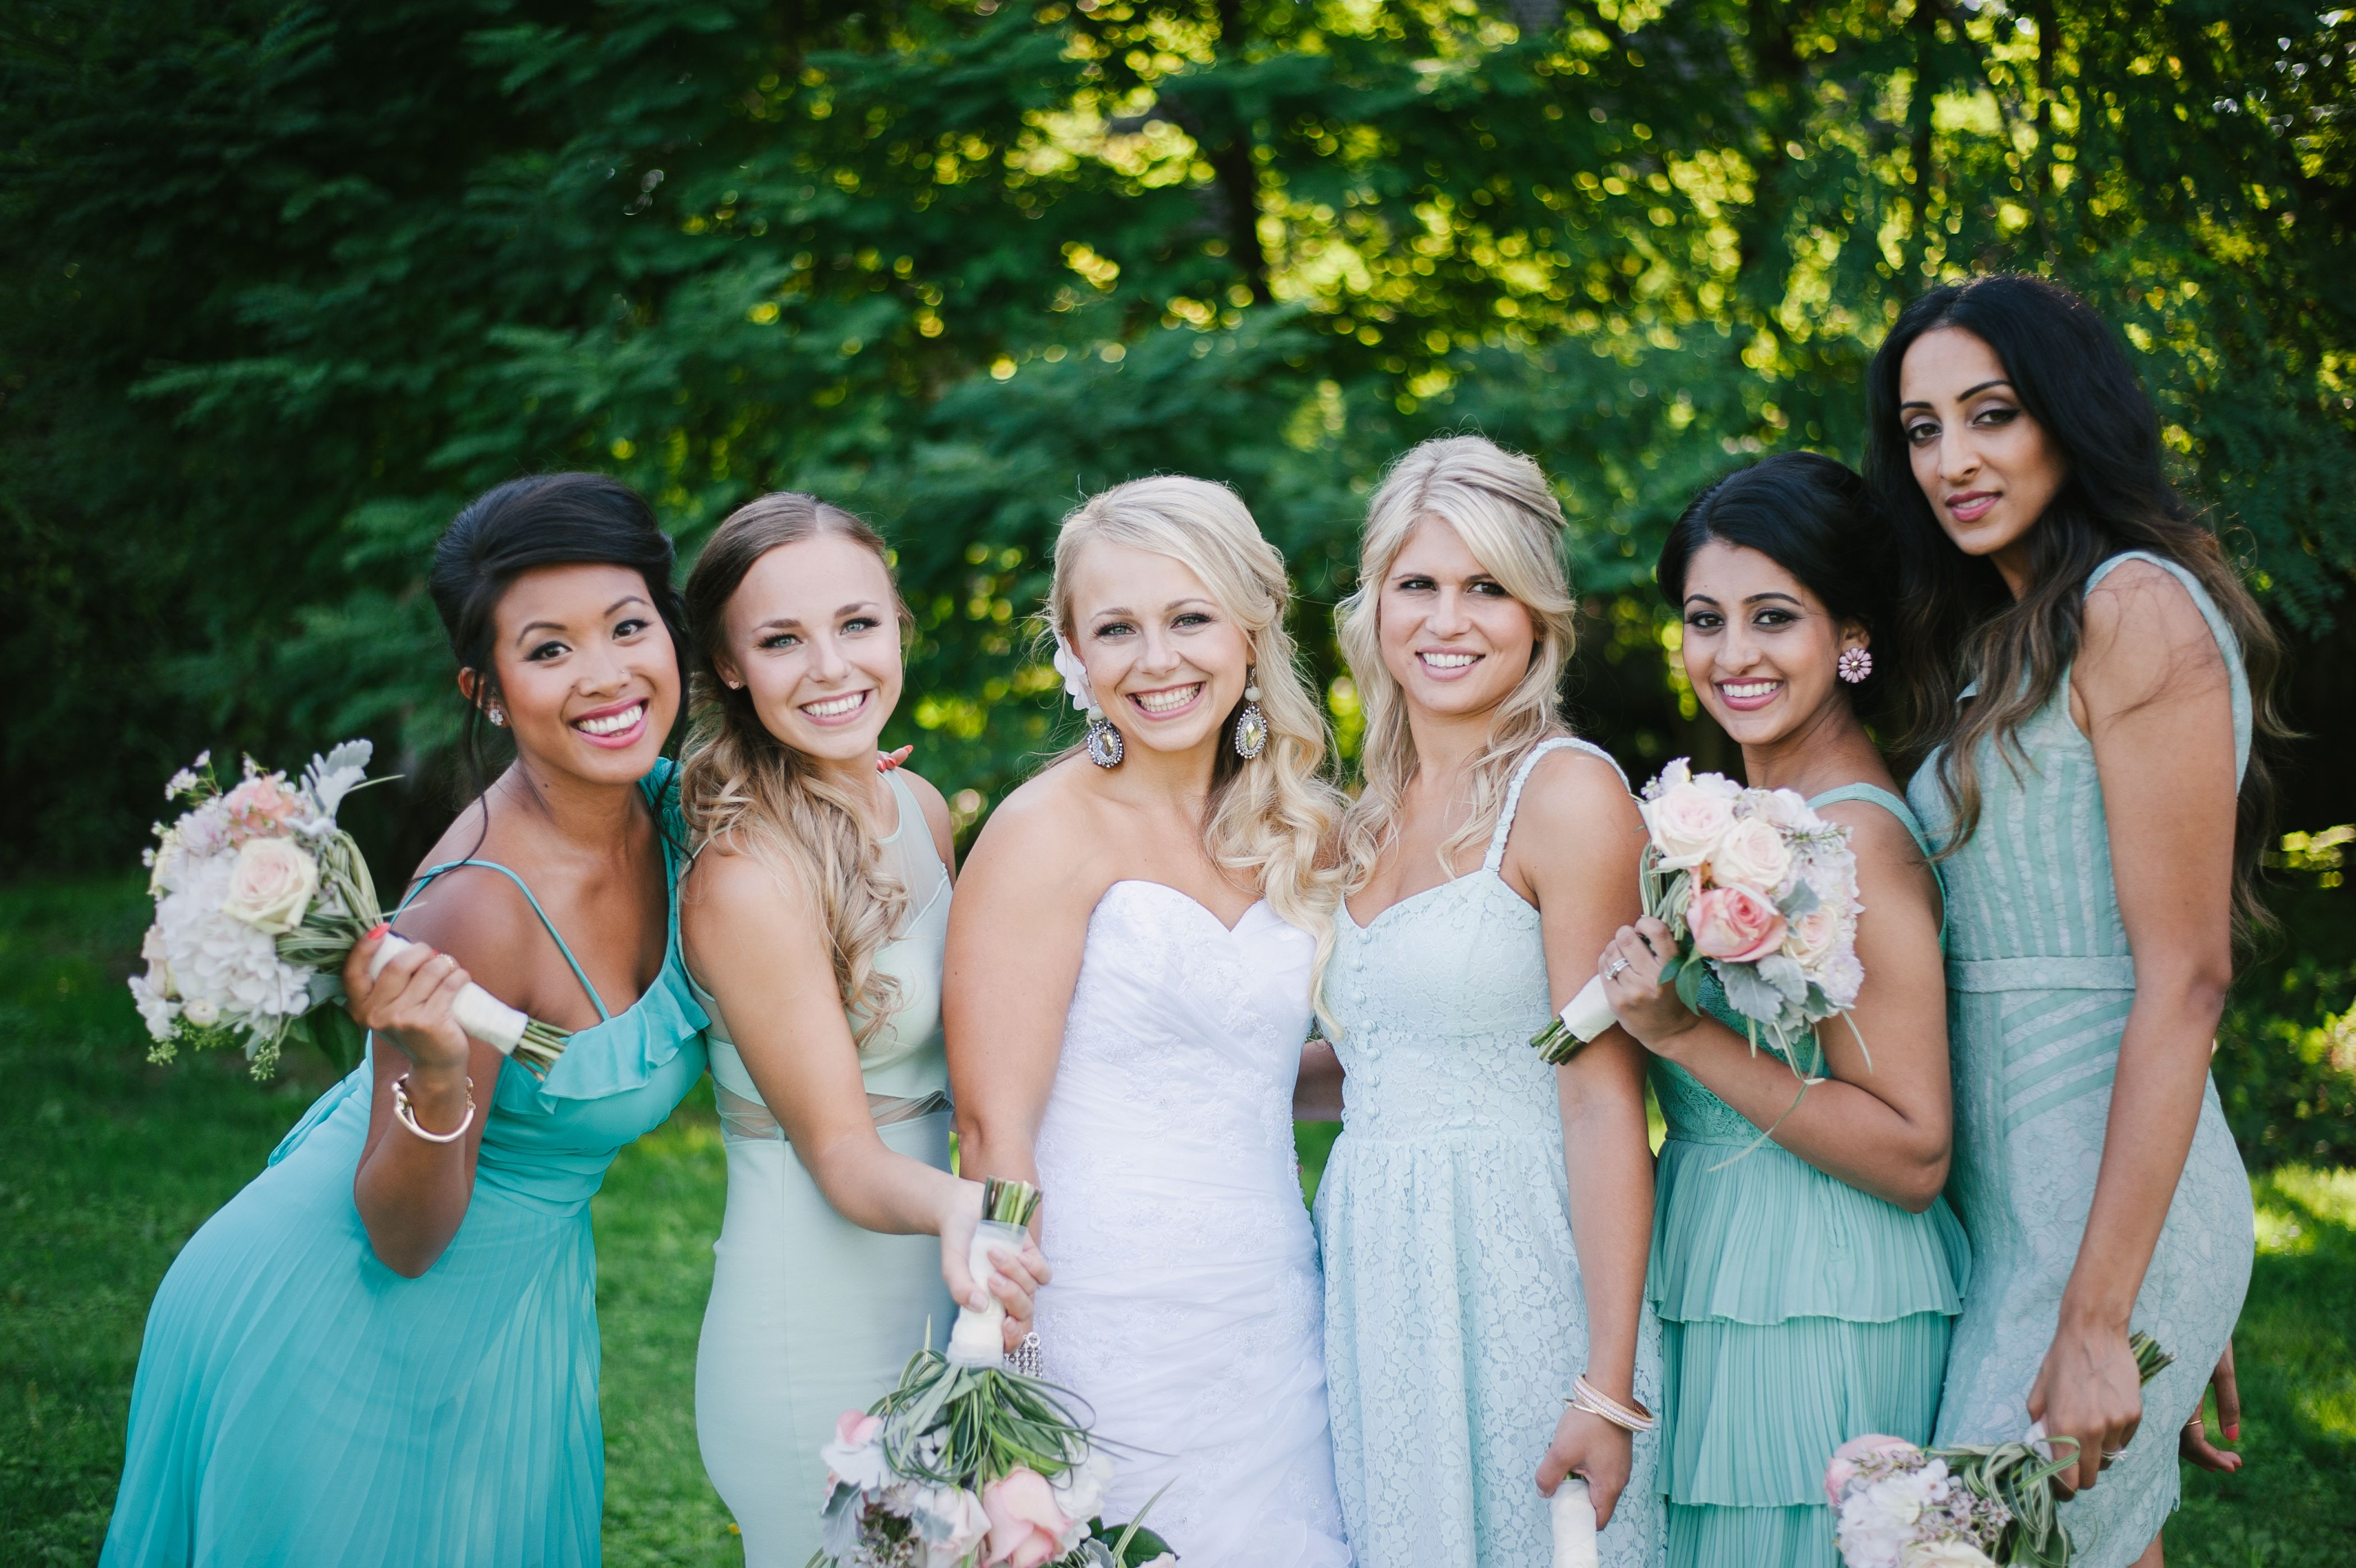 Love the mismatched mint bridesmaid dresses wedding boards are love the mismatched mint bridesmaid dresses wedding boards are mandatory and lovely pinterest mint bridesmaid dresses wedding and weddings ombrellifo Images